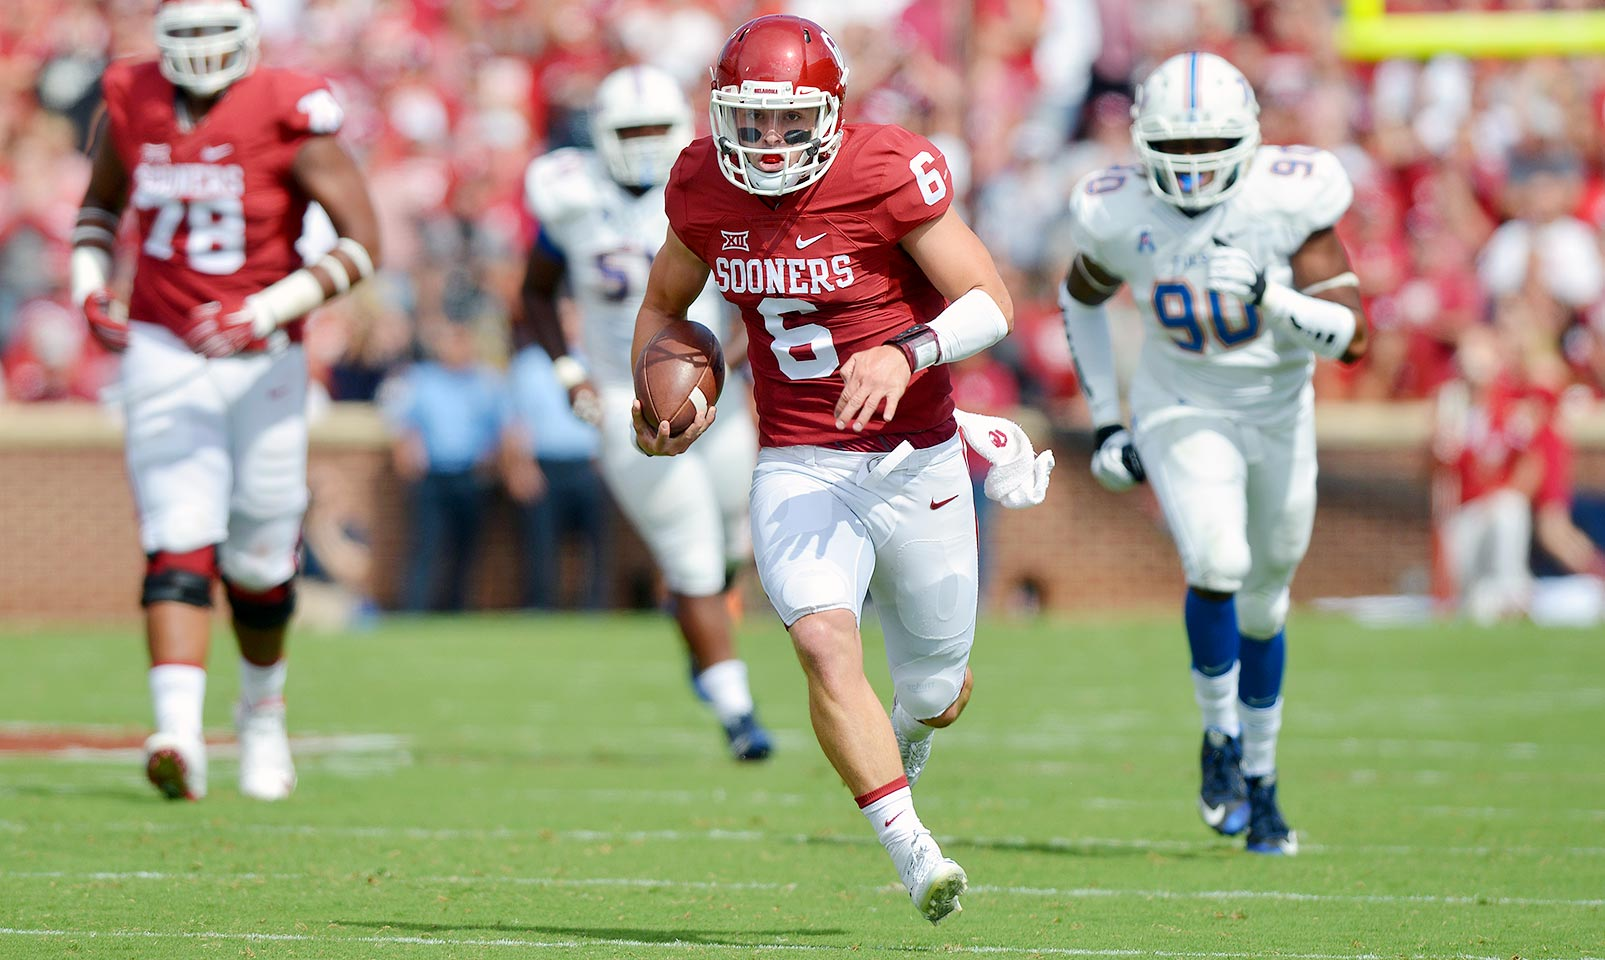 Oklahoma 52, Tulsa 38: Baker Mayfield set a Sooners record with 572 total yards and scored six touchdowns as Oklahoma outpaced the Golden Hurricane. Samaje Perine added 152 yards on the ground and a score.